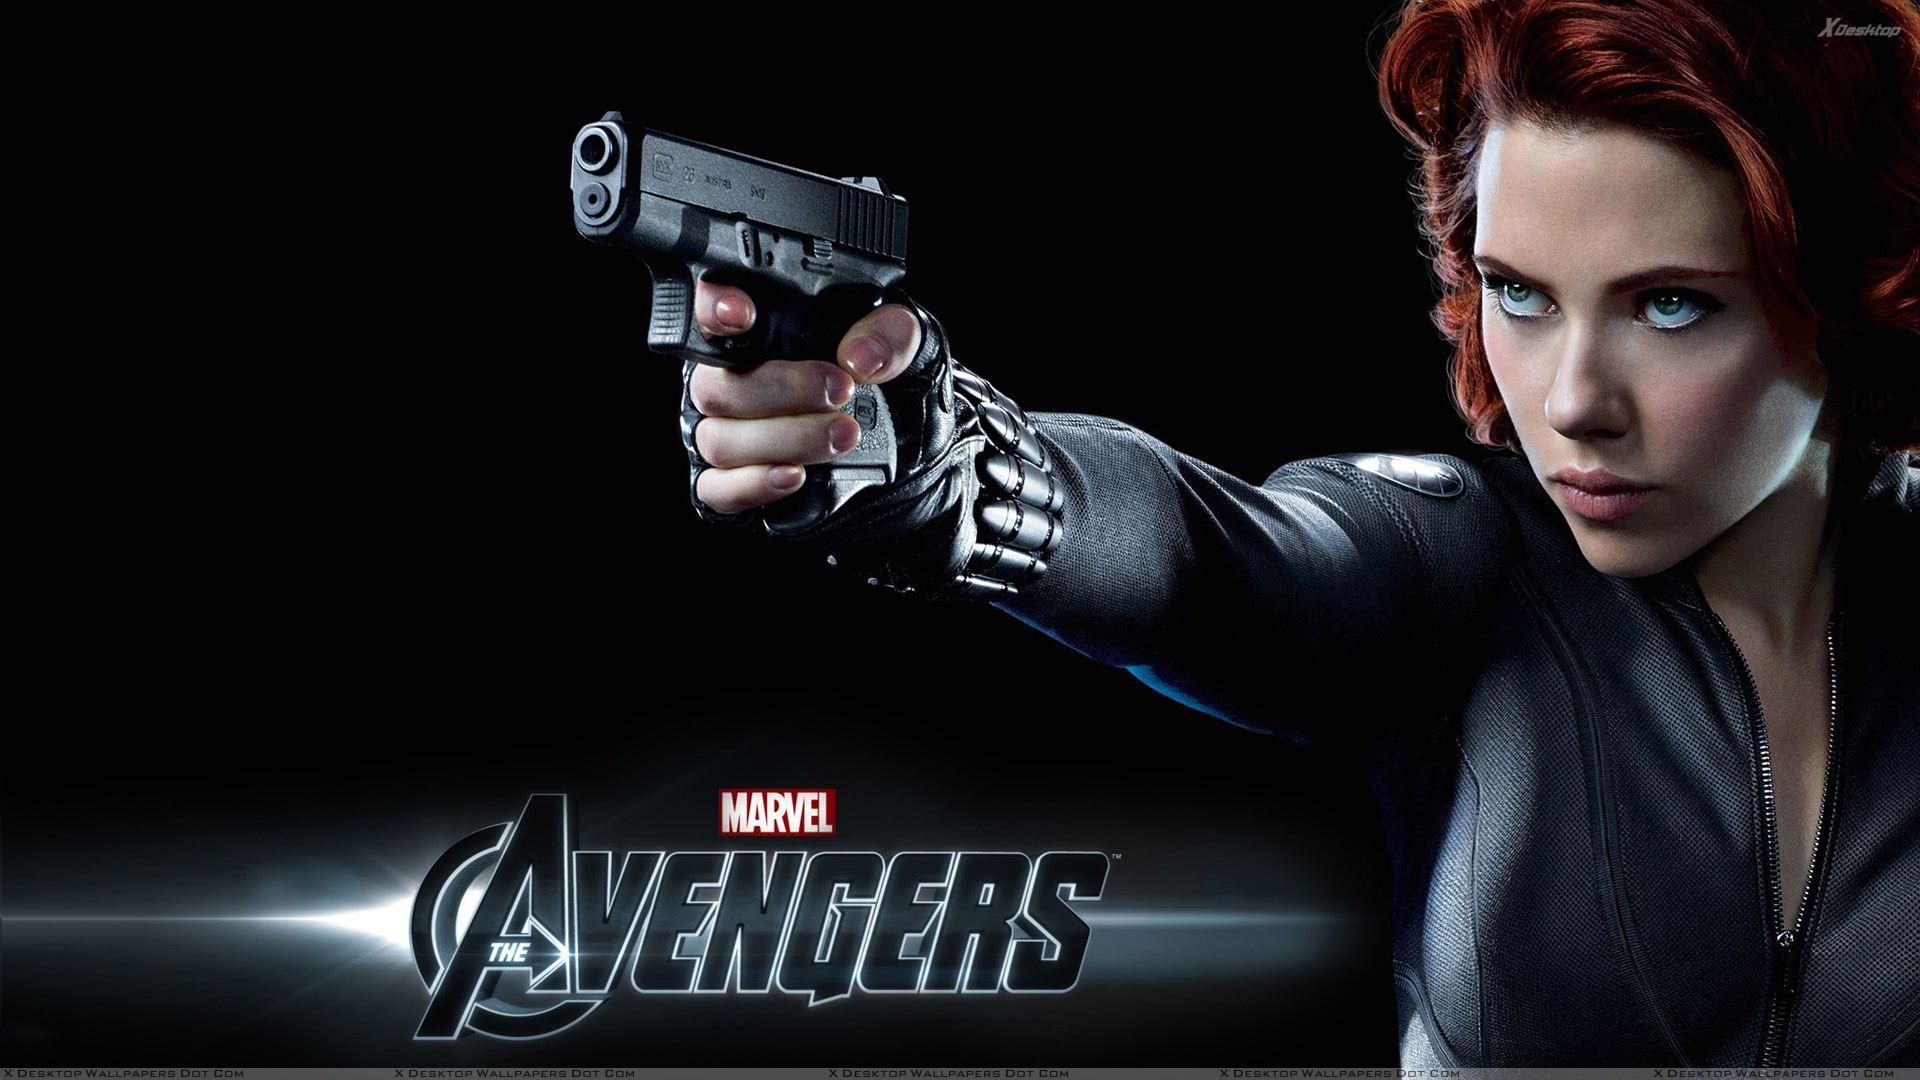 The Avengers Scarlett Johansson As Black Widow Gun In Hand Wallpaper